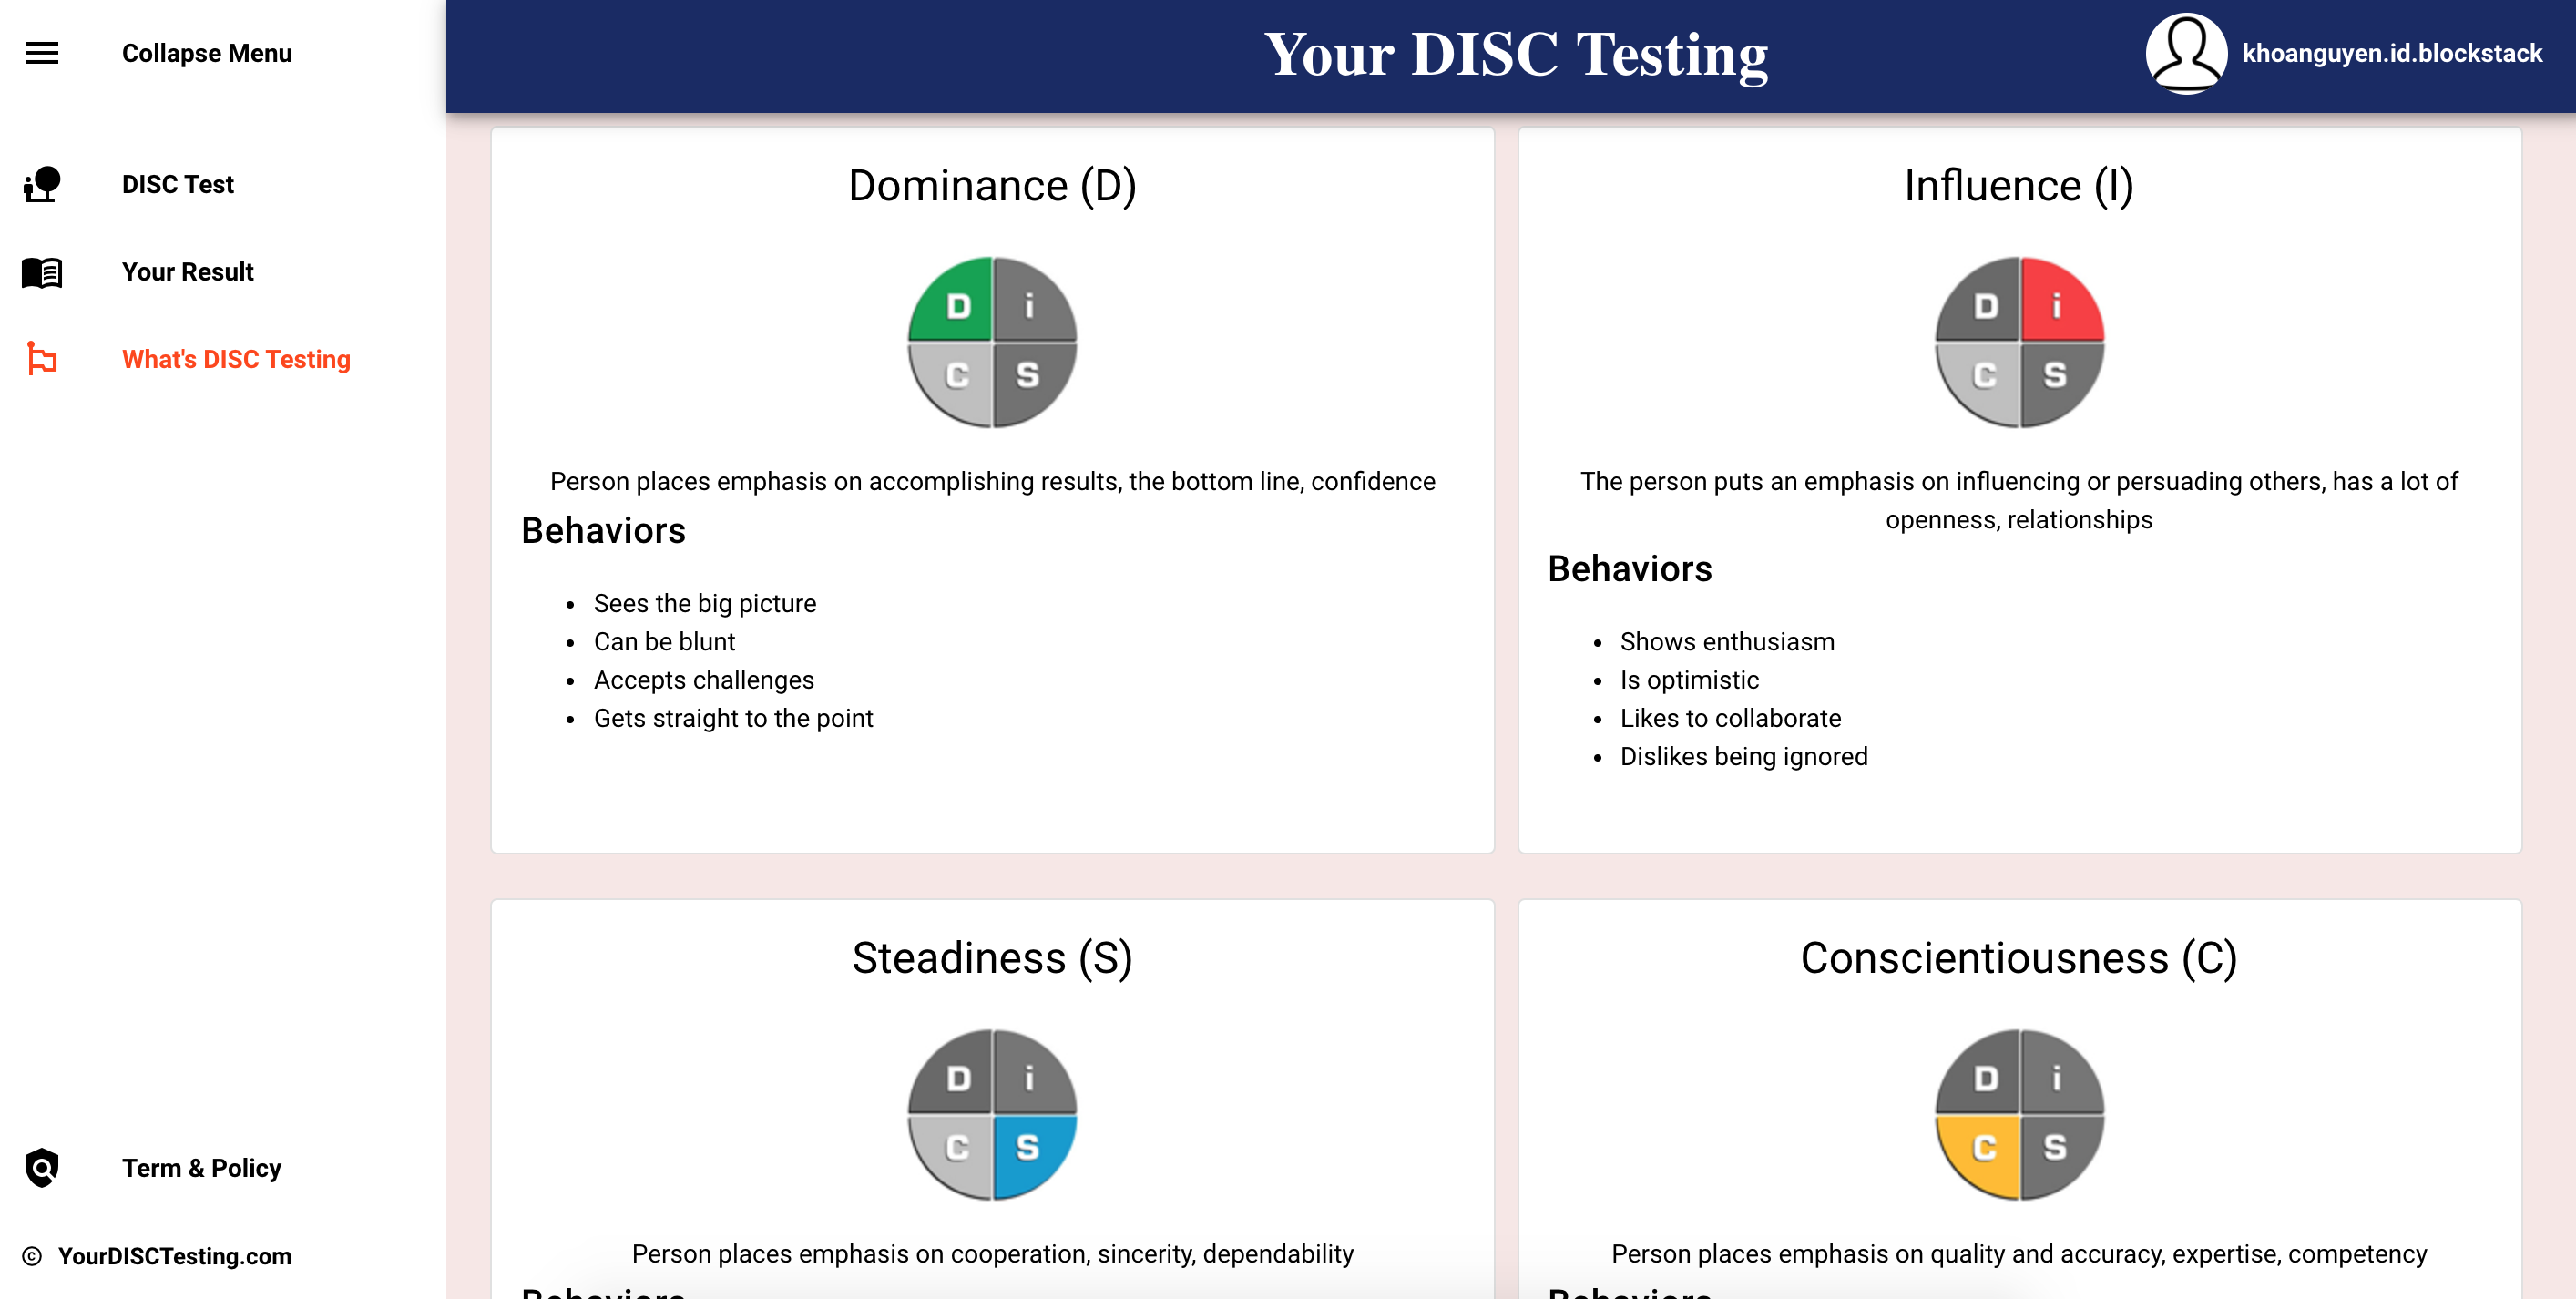 Your DISC Testing